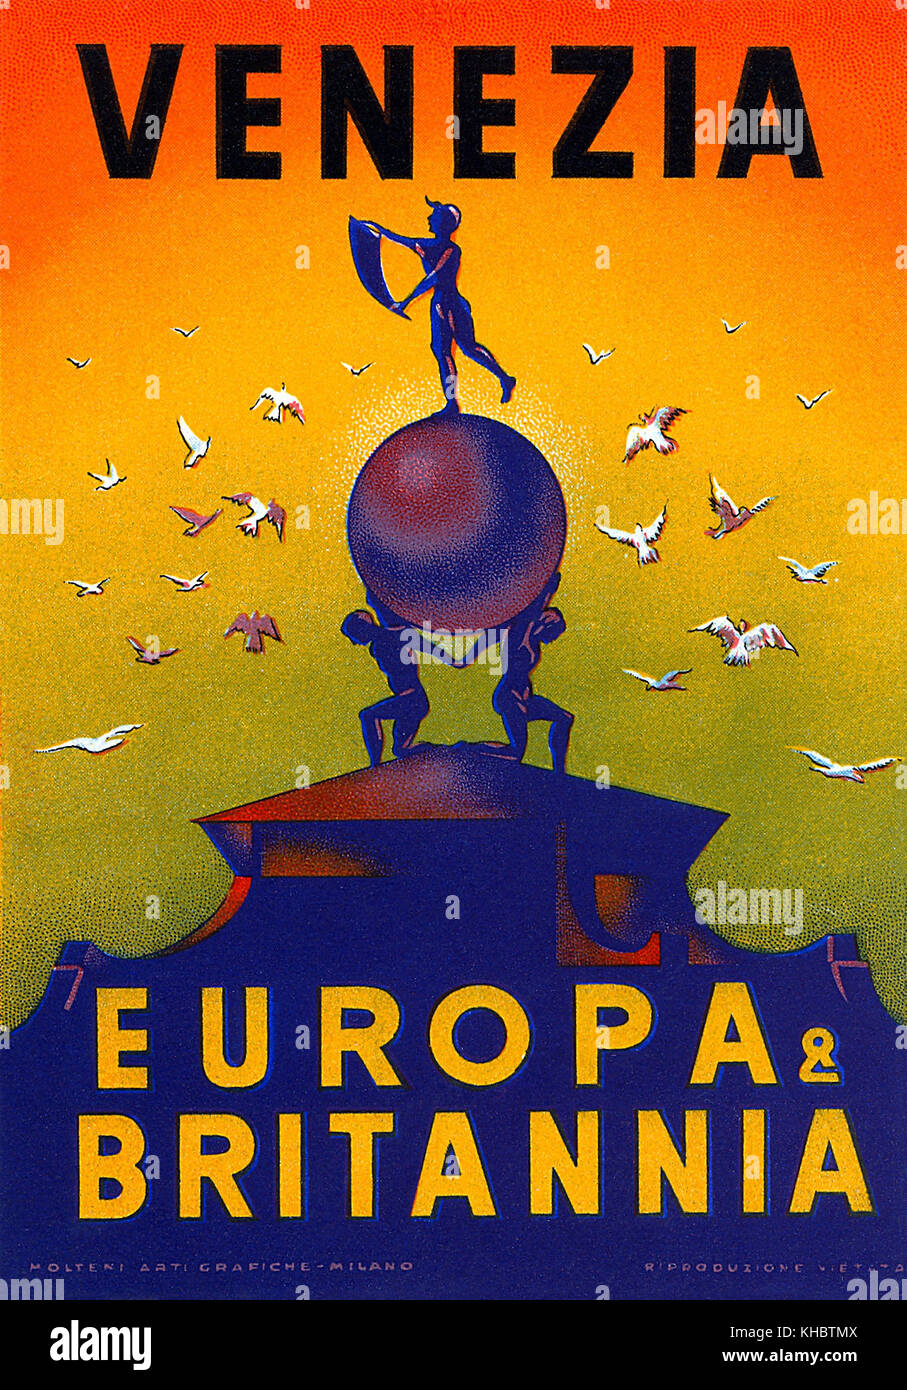 Vintage luggage label for the Europa & Britannia Hotel in Venice. It went by that name form 1938 until 1976. - Stock Image